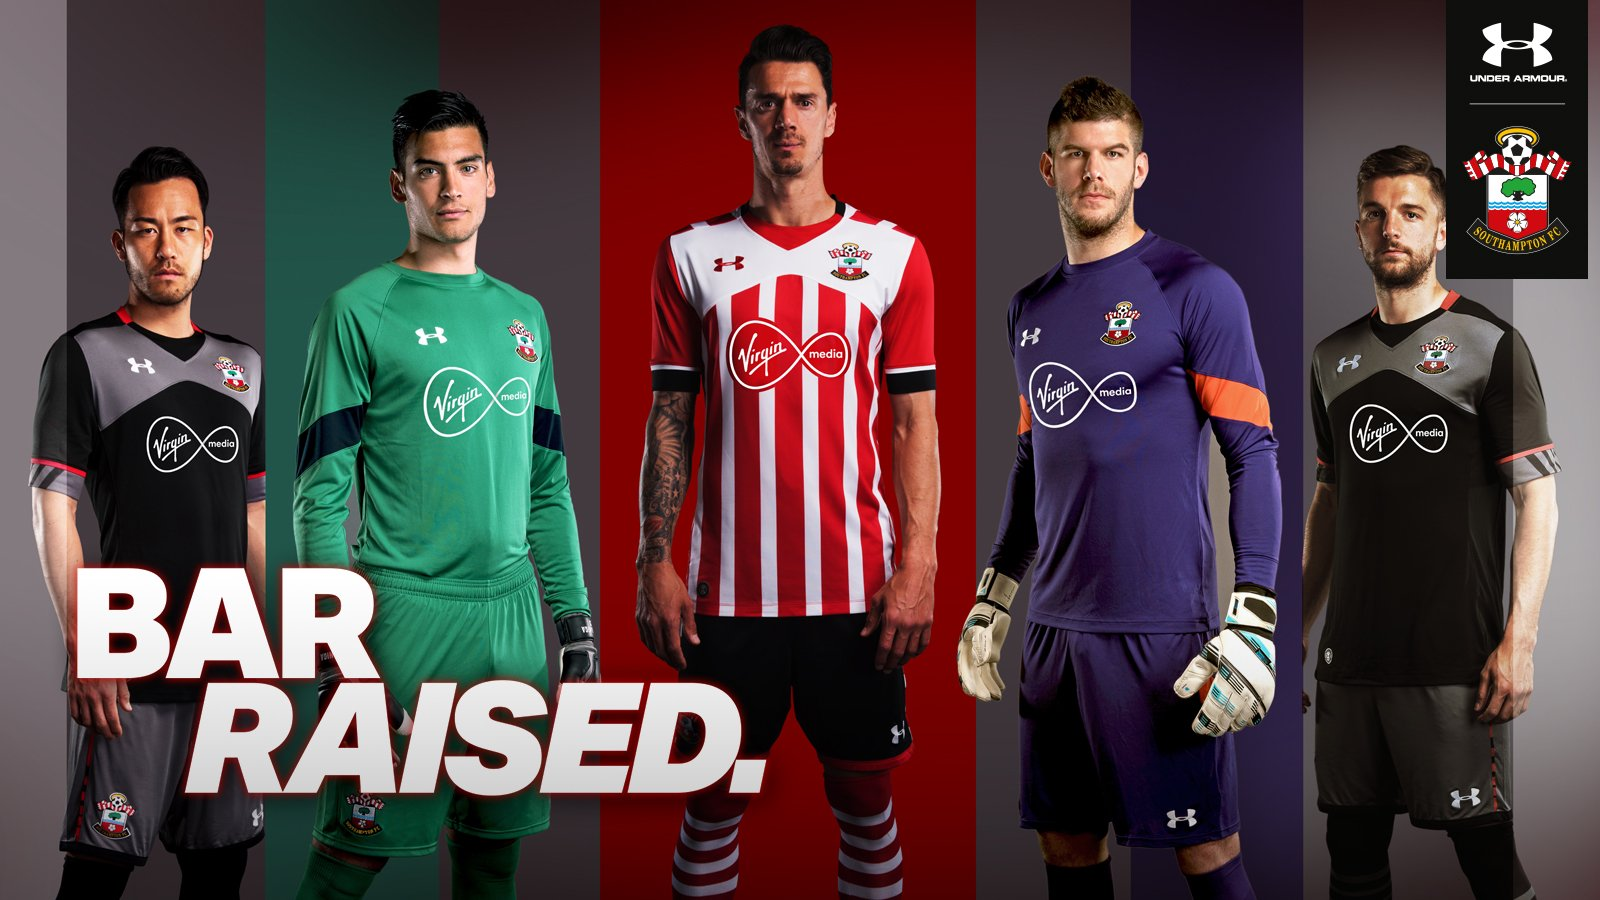 under armour southampton 16 17 kits released footy headlines. Black Bedroom Furniture Sets. Home Design Ideas